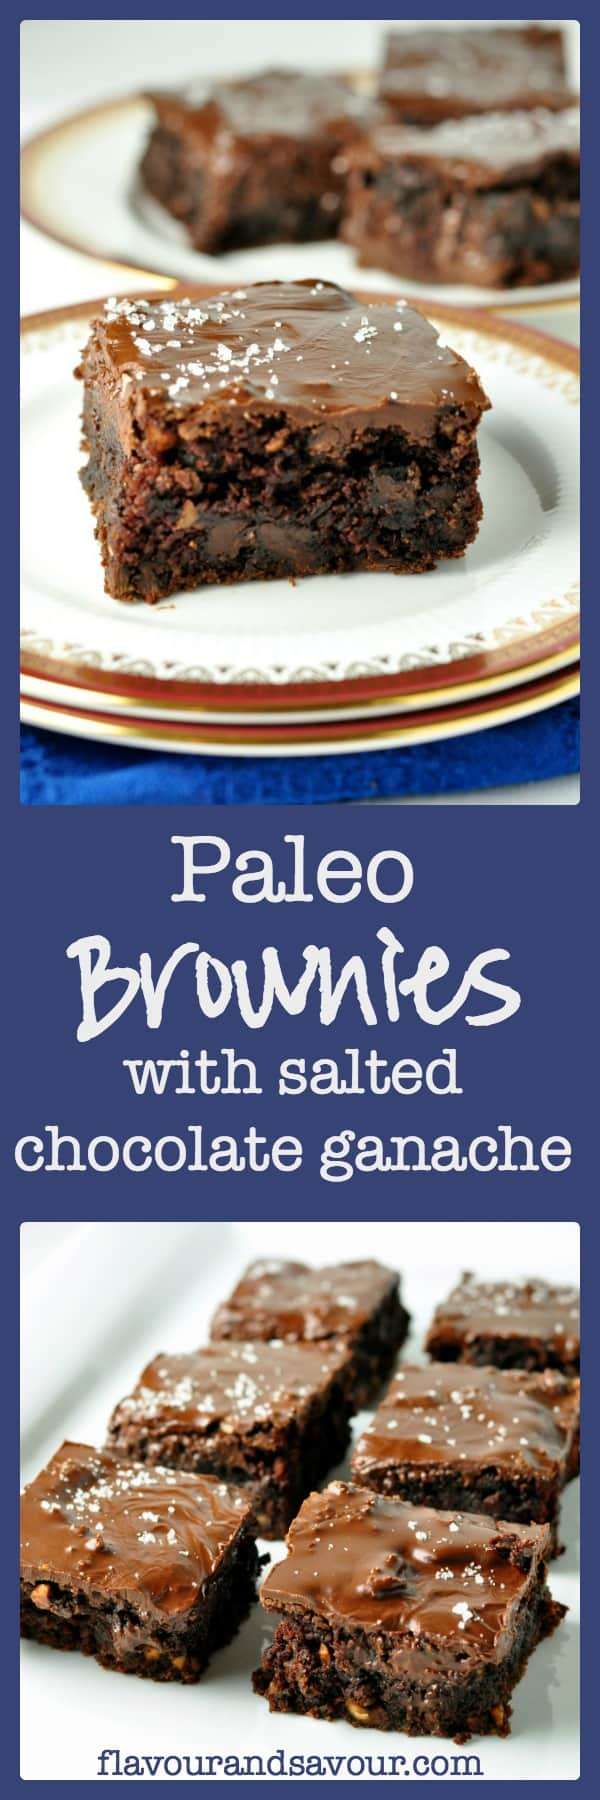 Paleo Brownies with Salted Chocolate Ganache. |www.flavourandsavour.com